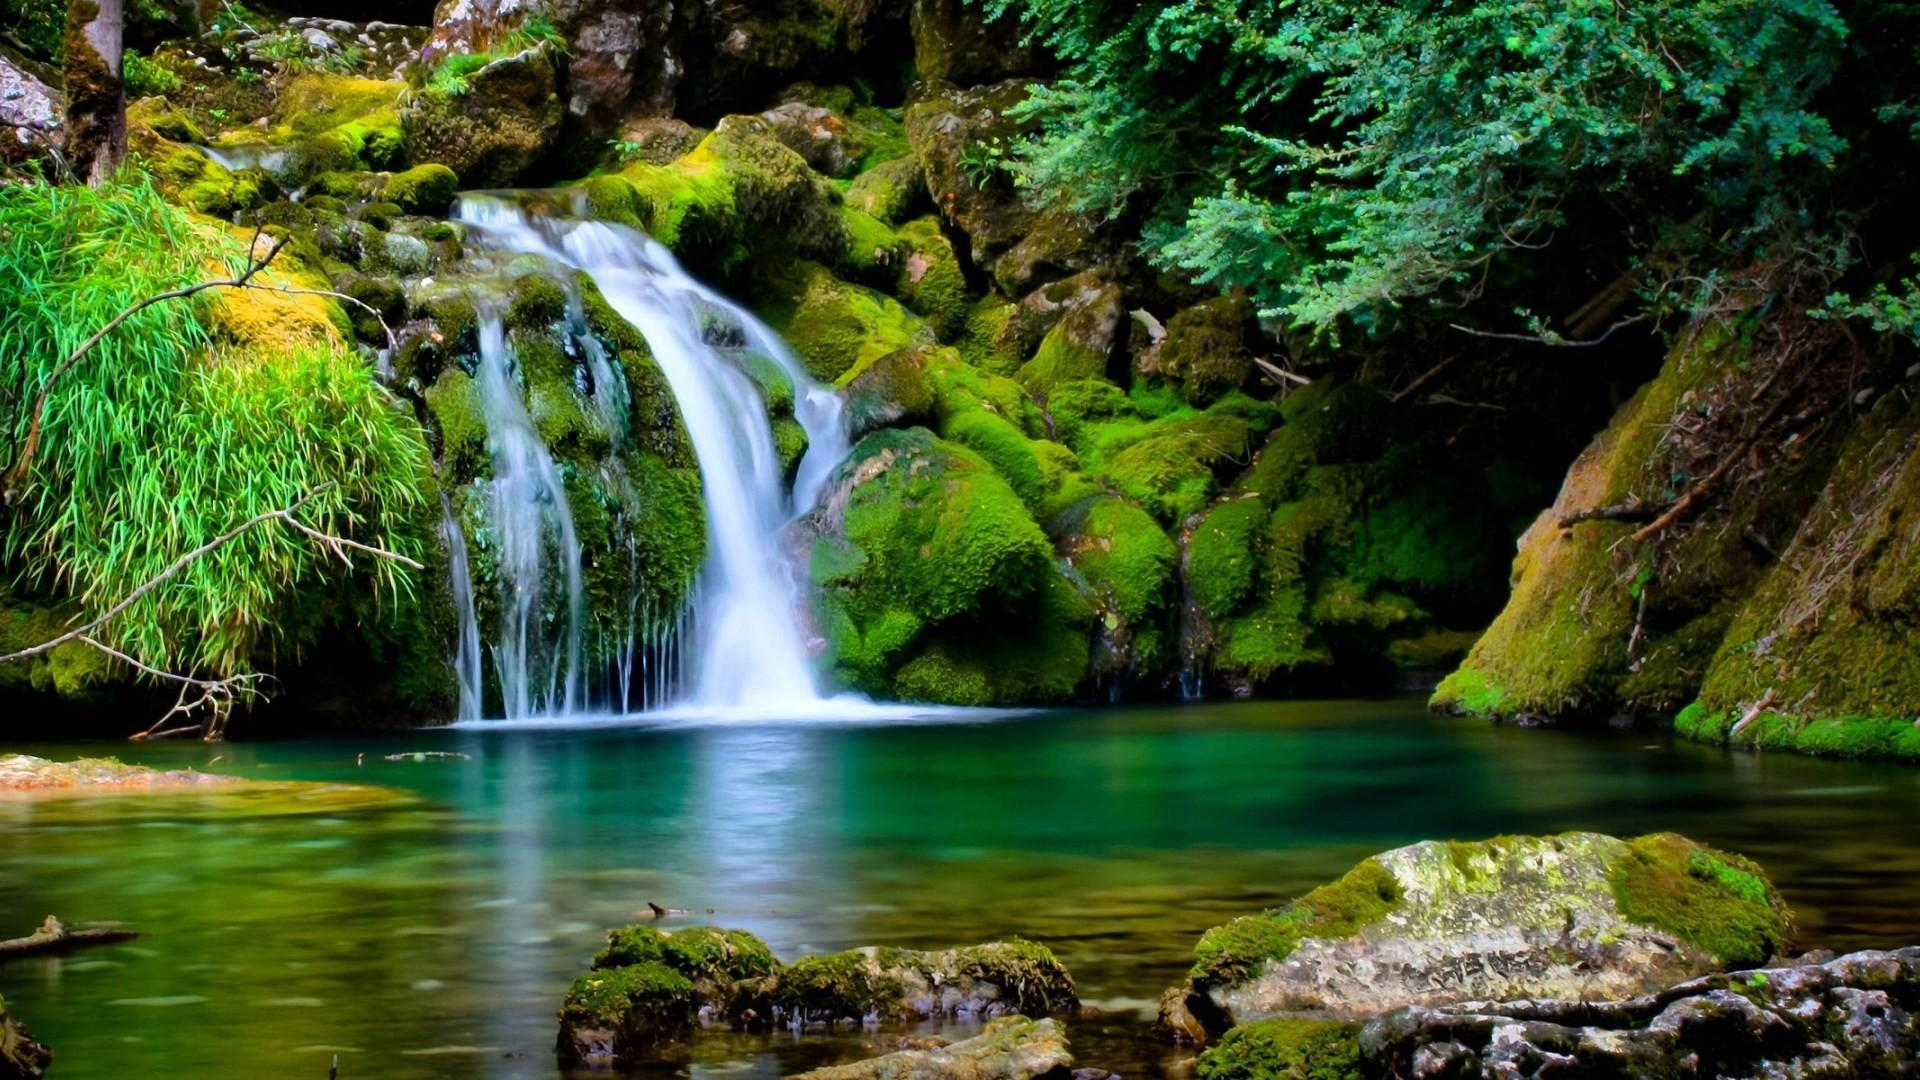 nature wallpaper hd,body of water,water resources,natural landscape,waterfall,nature